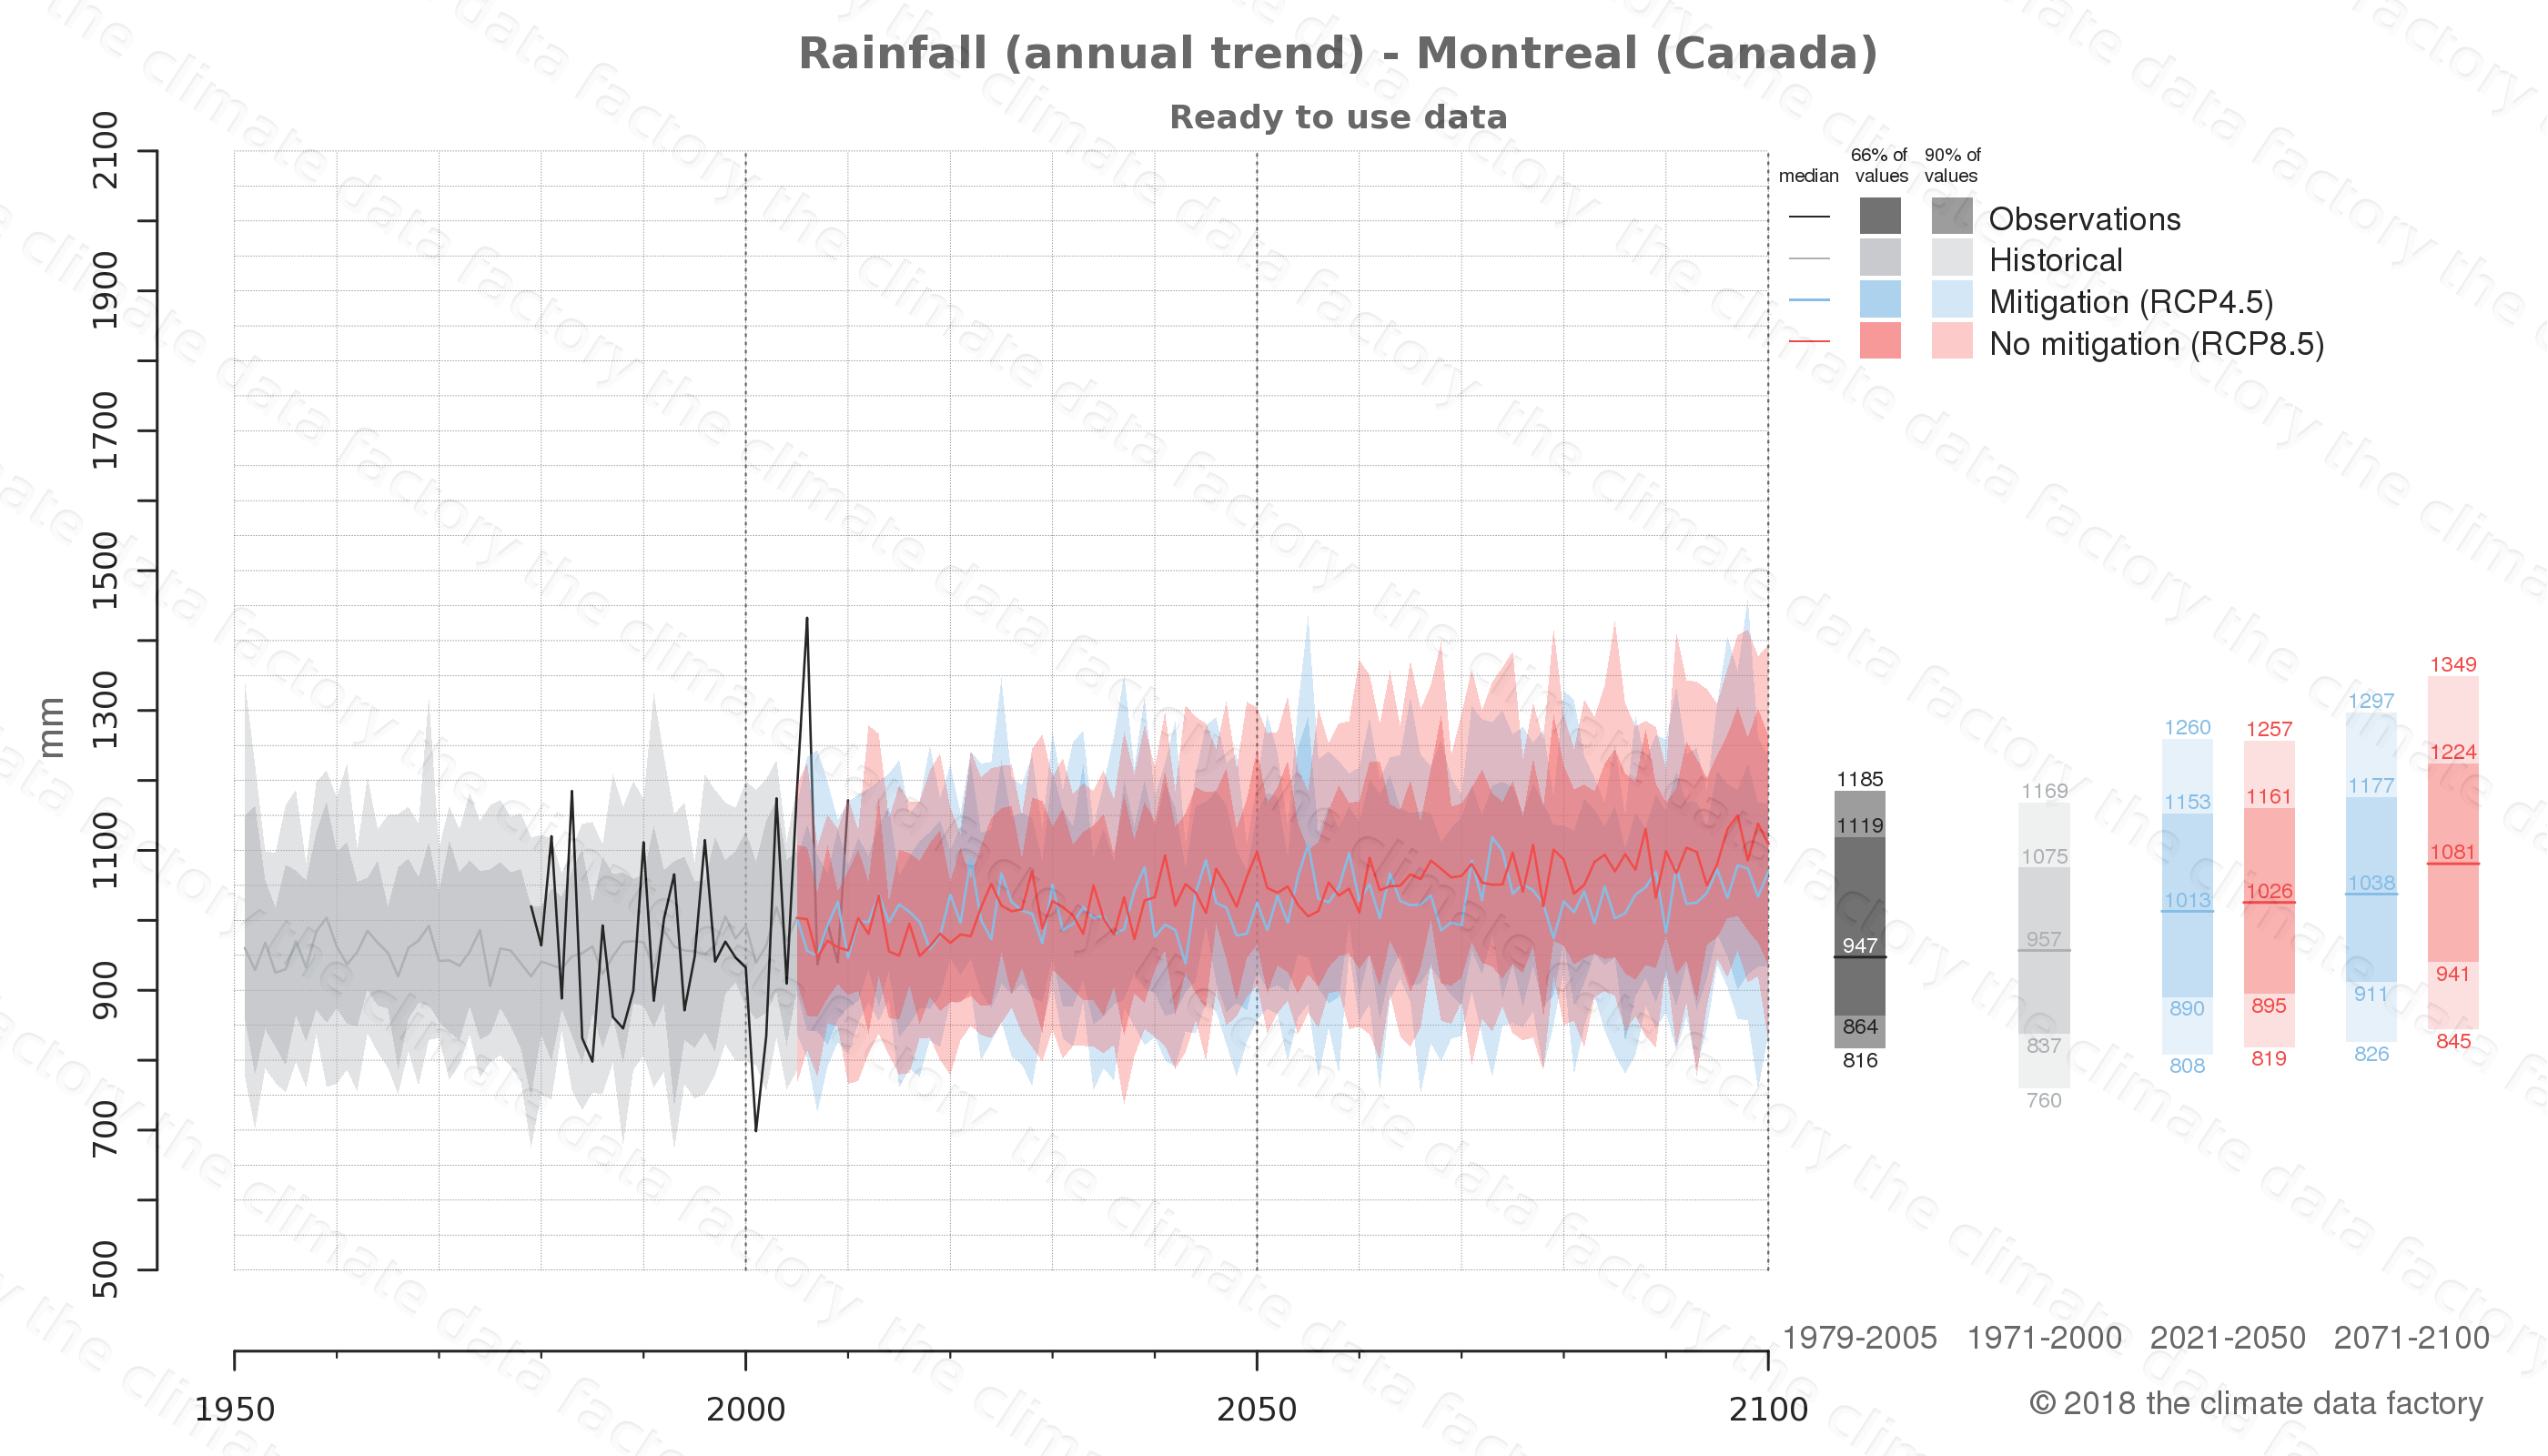 climate change data policy adaptation climate graph city data rainfall montreal canada